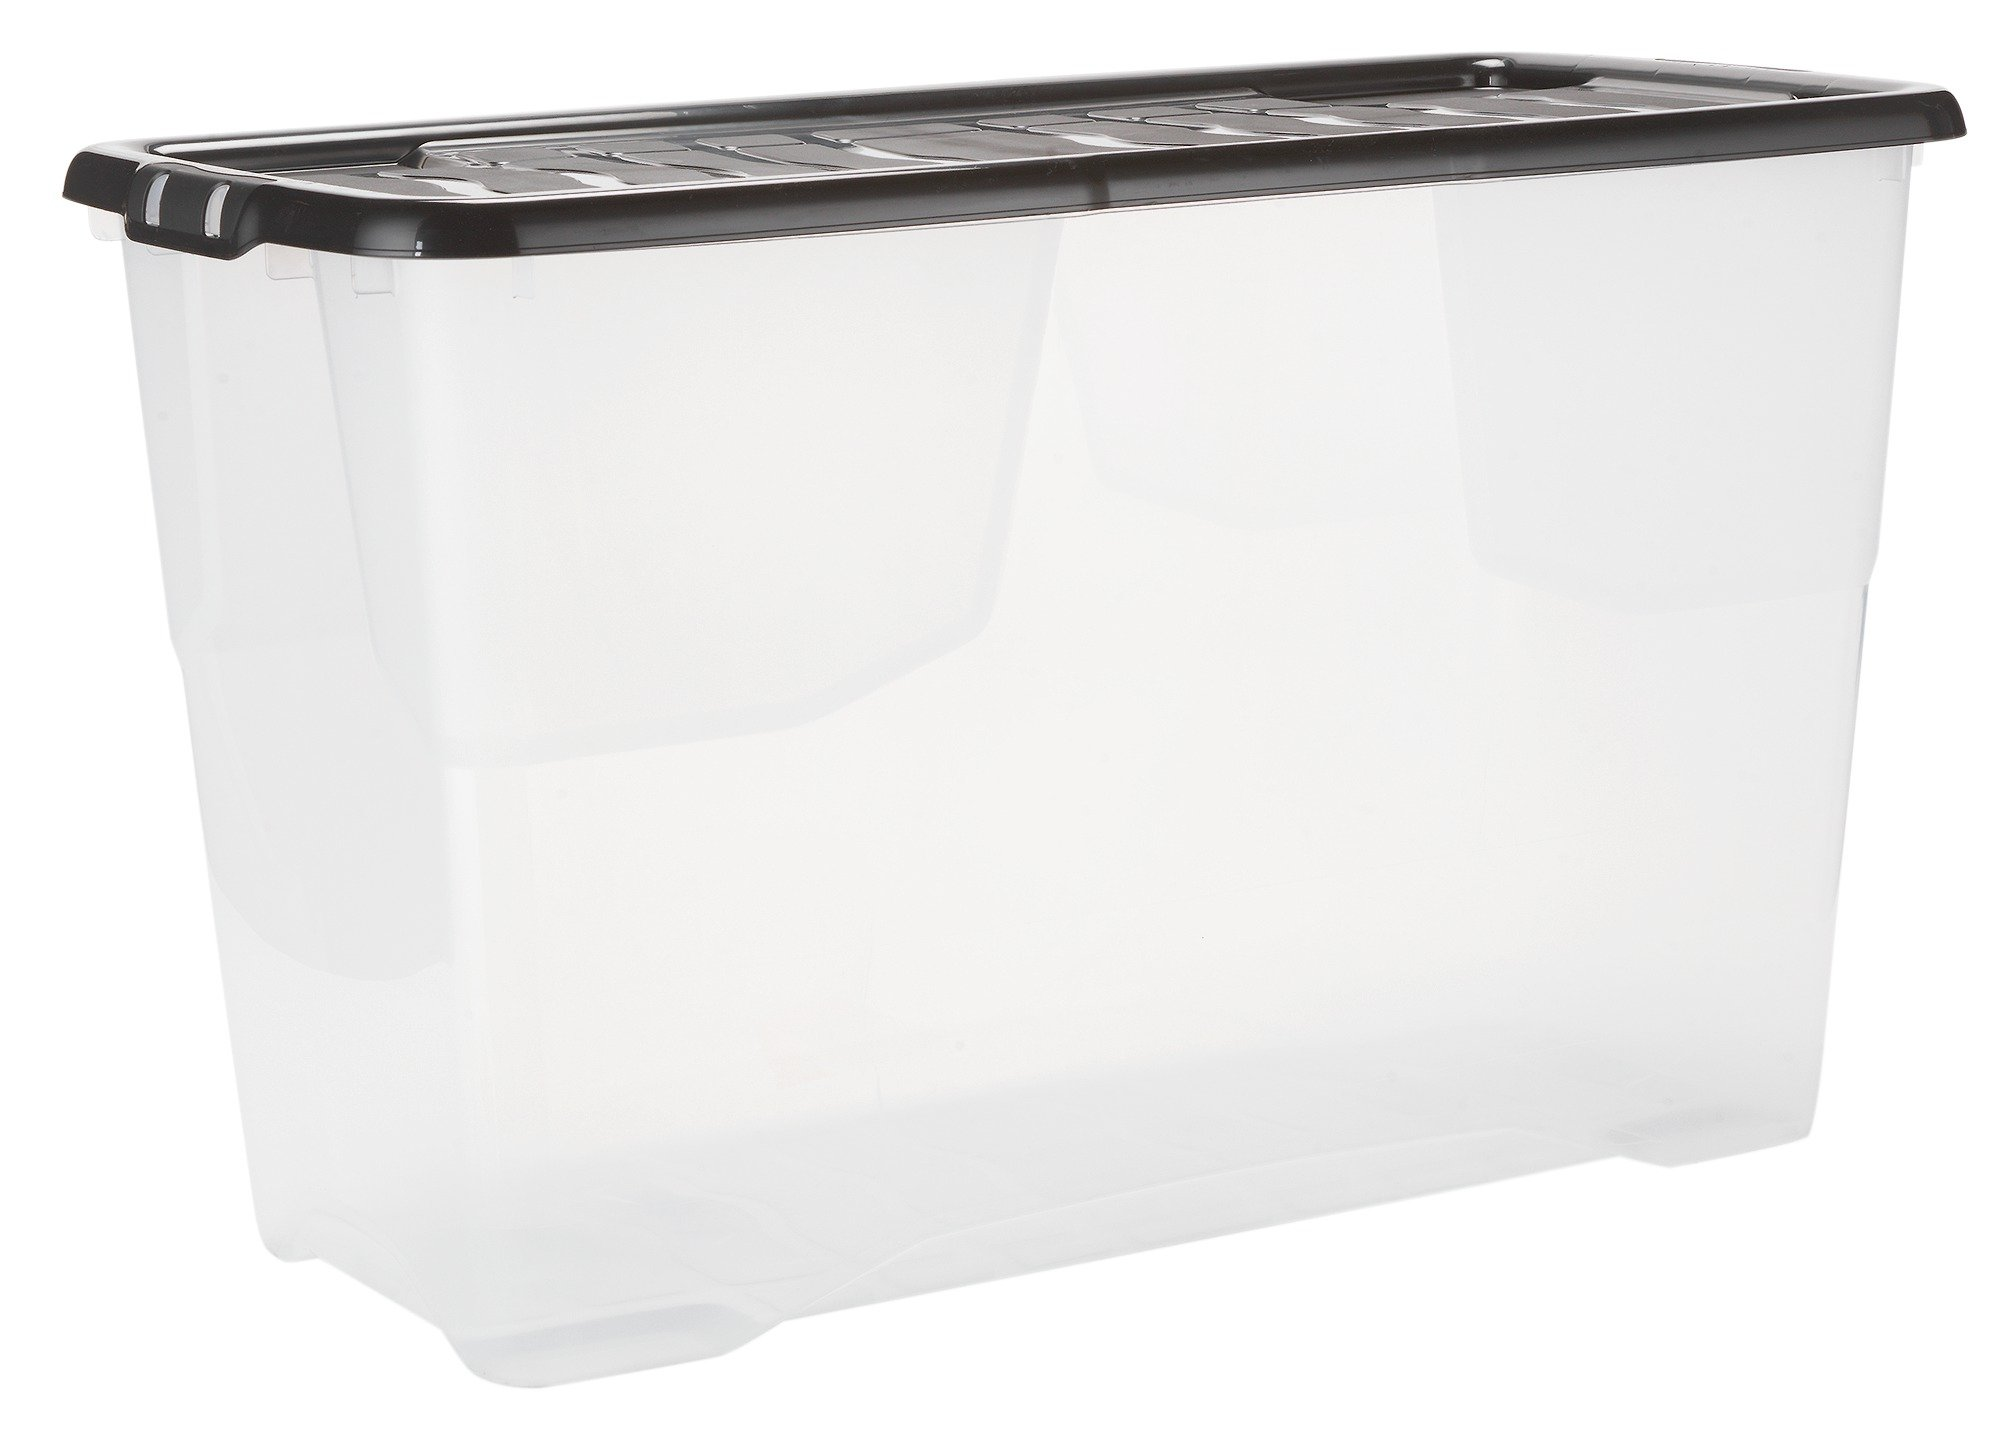 Argos Home 100 Litre Curved Plastic Storage Box And Lid699/4110